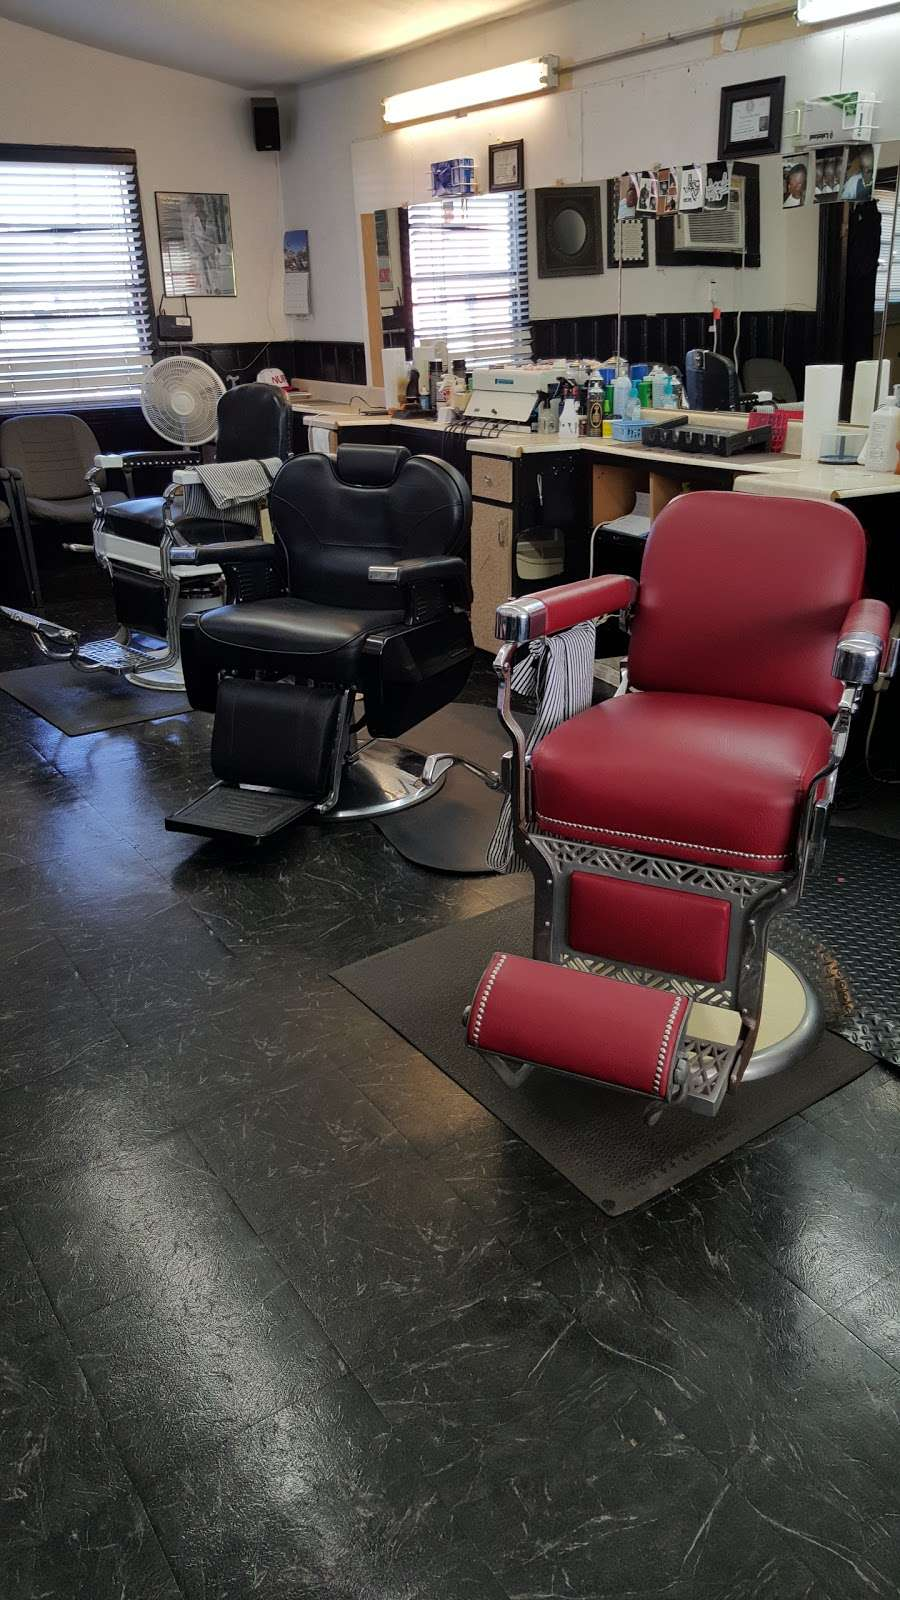 Cut Creations Barber Shop - hair care  | Photo 3 of 10 | Address: 5301 N Wayside Dr, Houston, TX 77028, USA | Phone: (713) 671-9825